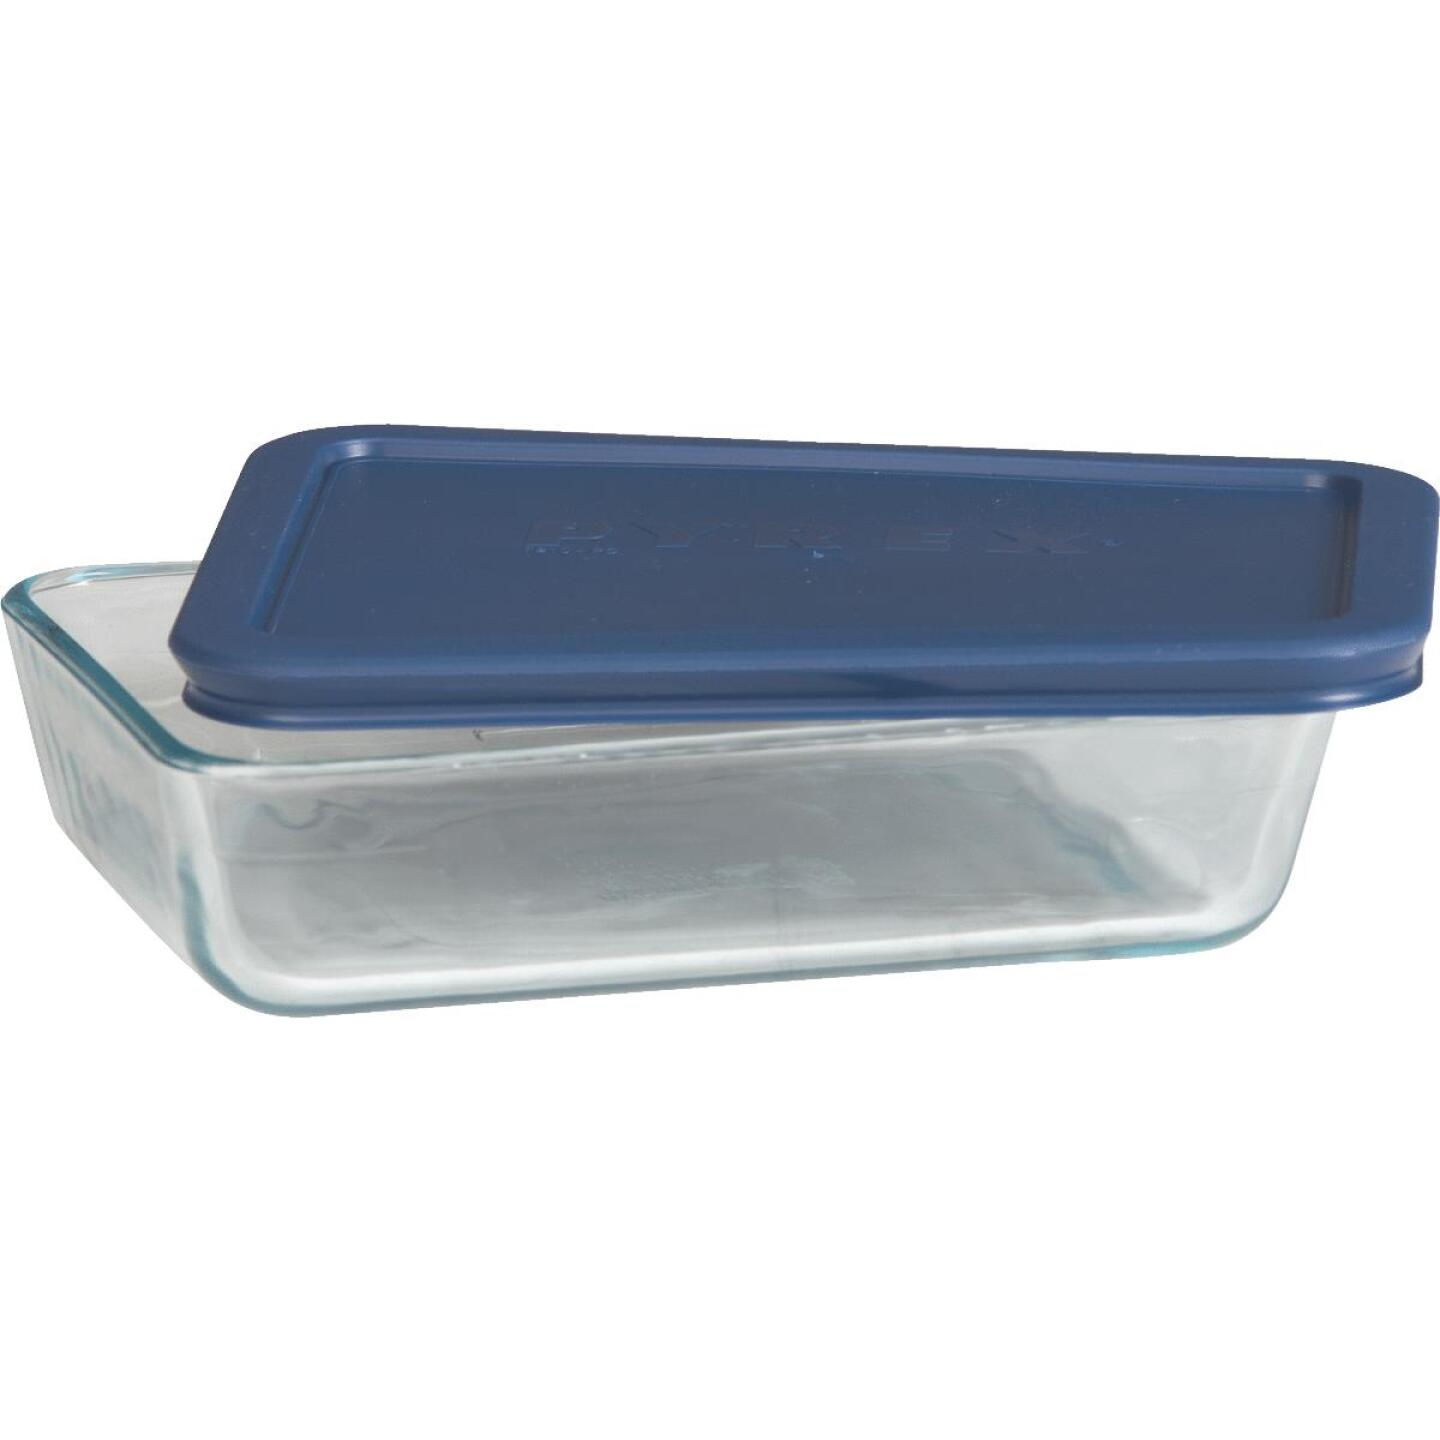 Pyrex Simply Store 3-Cup Rectangle Glass Storage Container with Lid Image 2